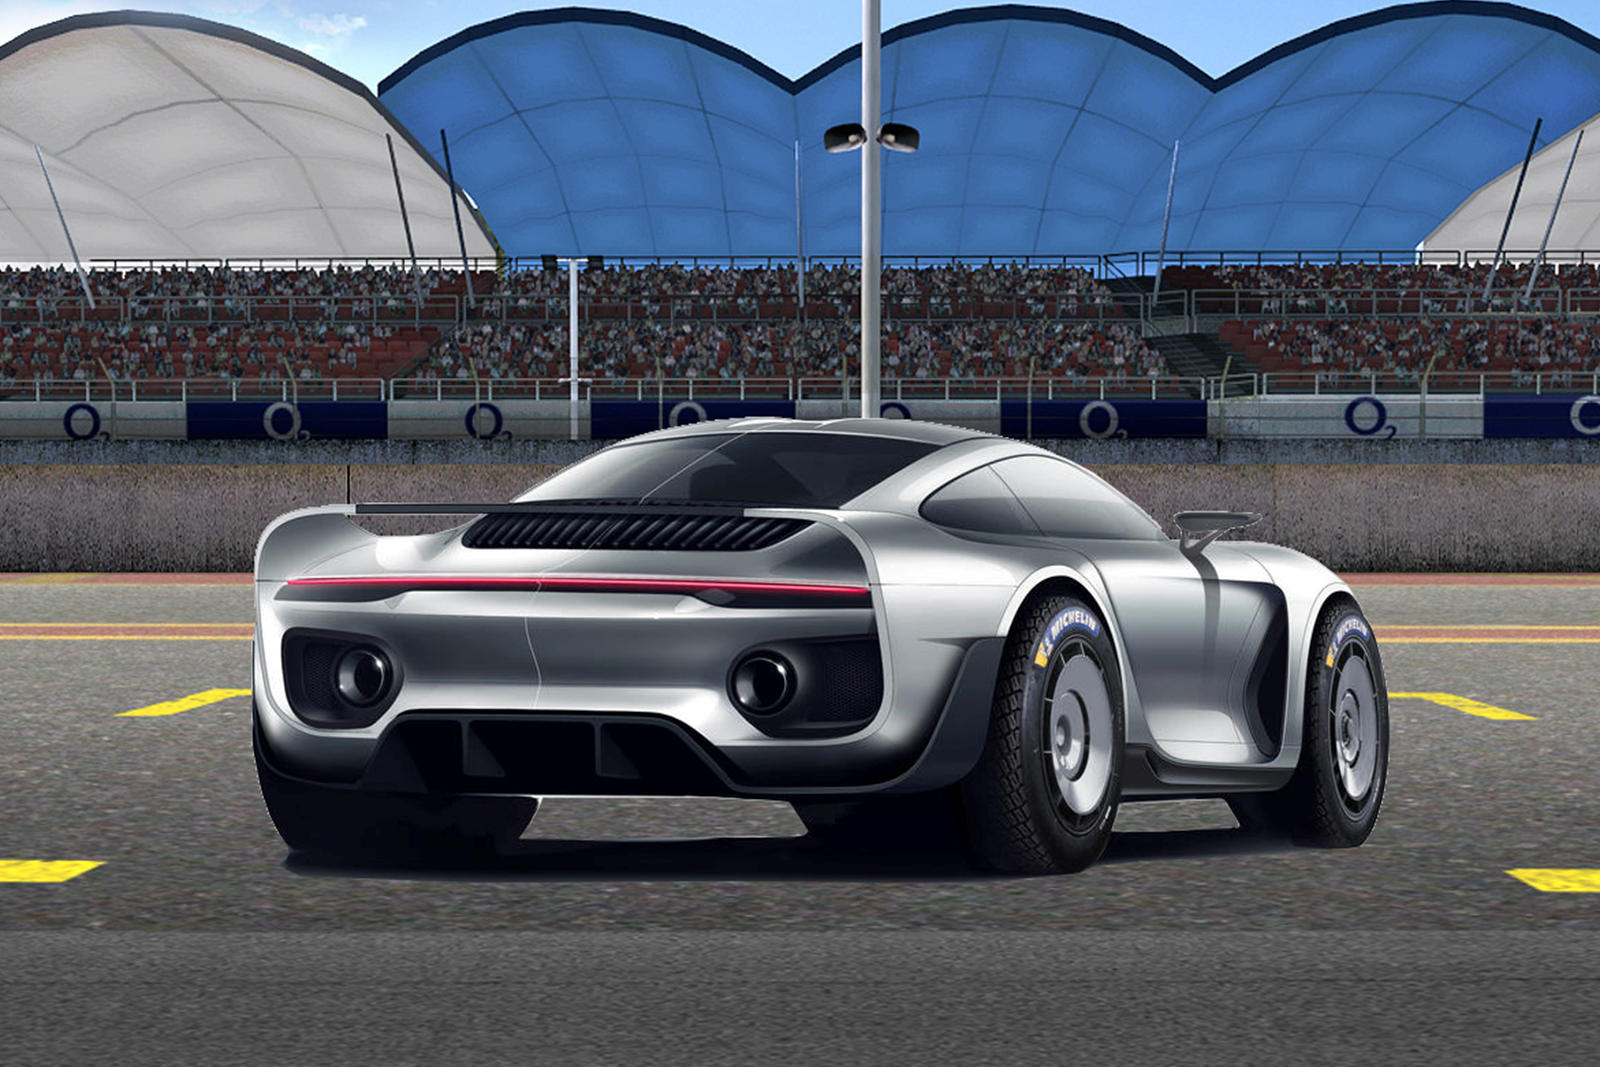 photo of Gemballa's 959 Supercar Based On New Porsche 911 With 740-HP Ruf Engine image